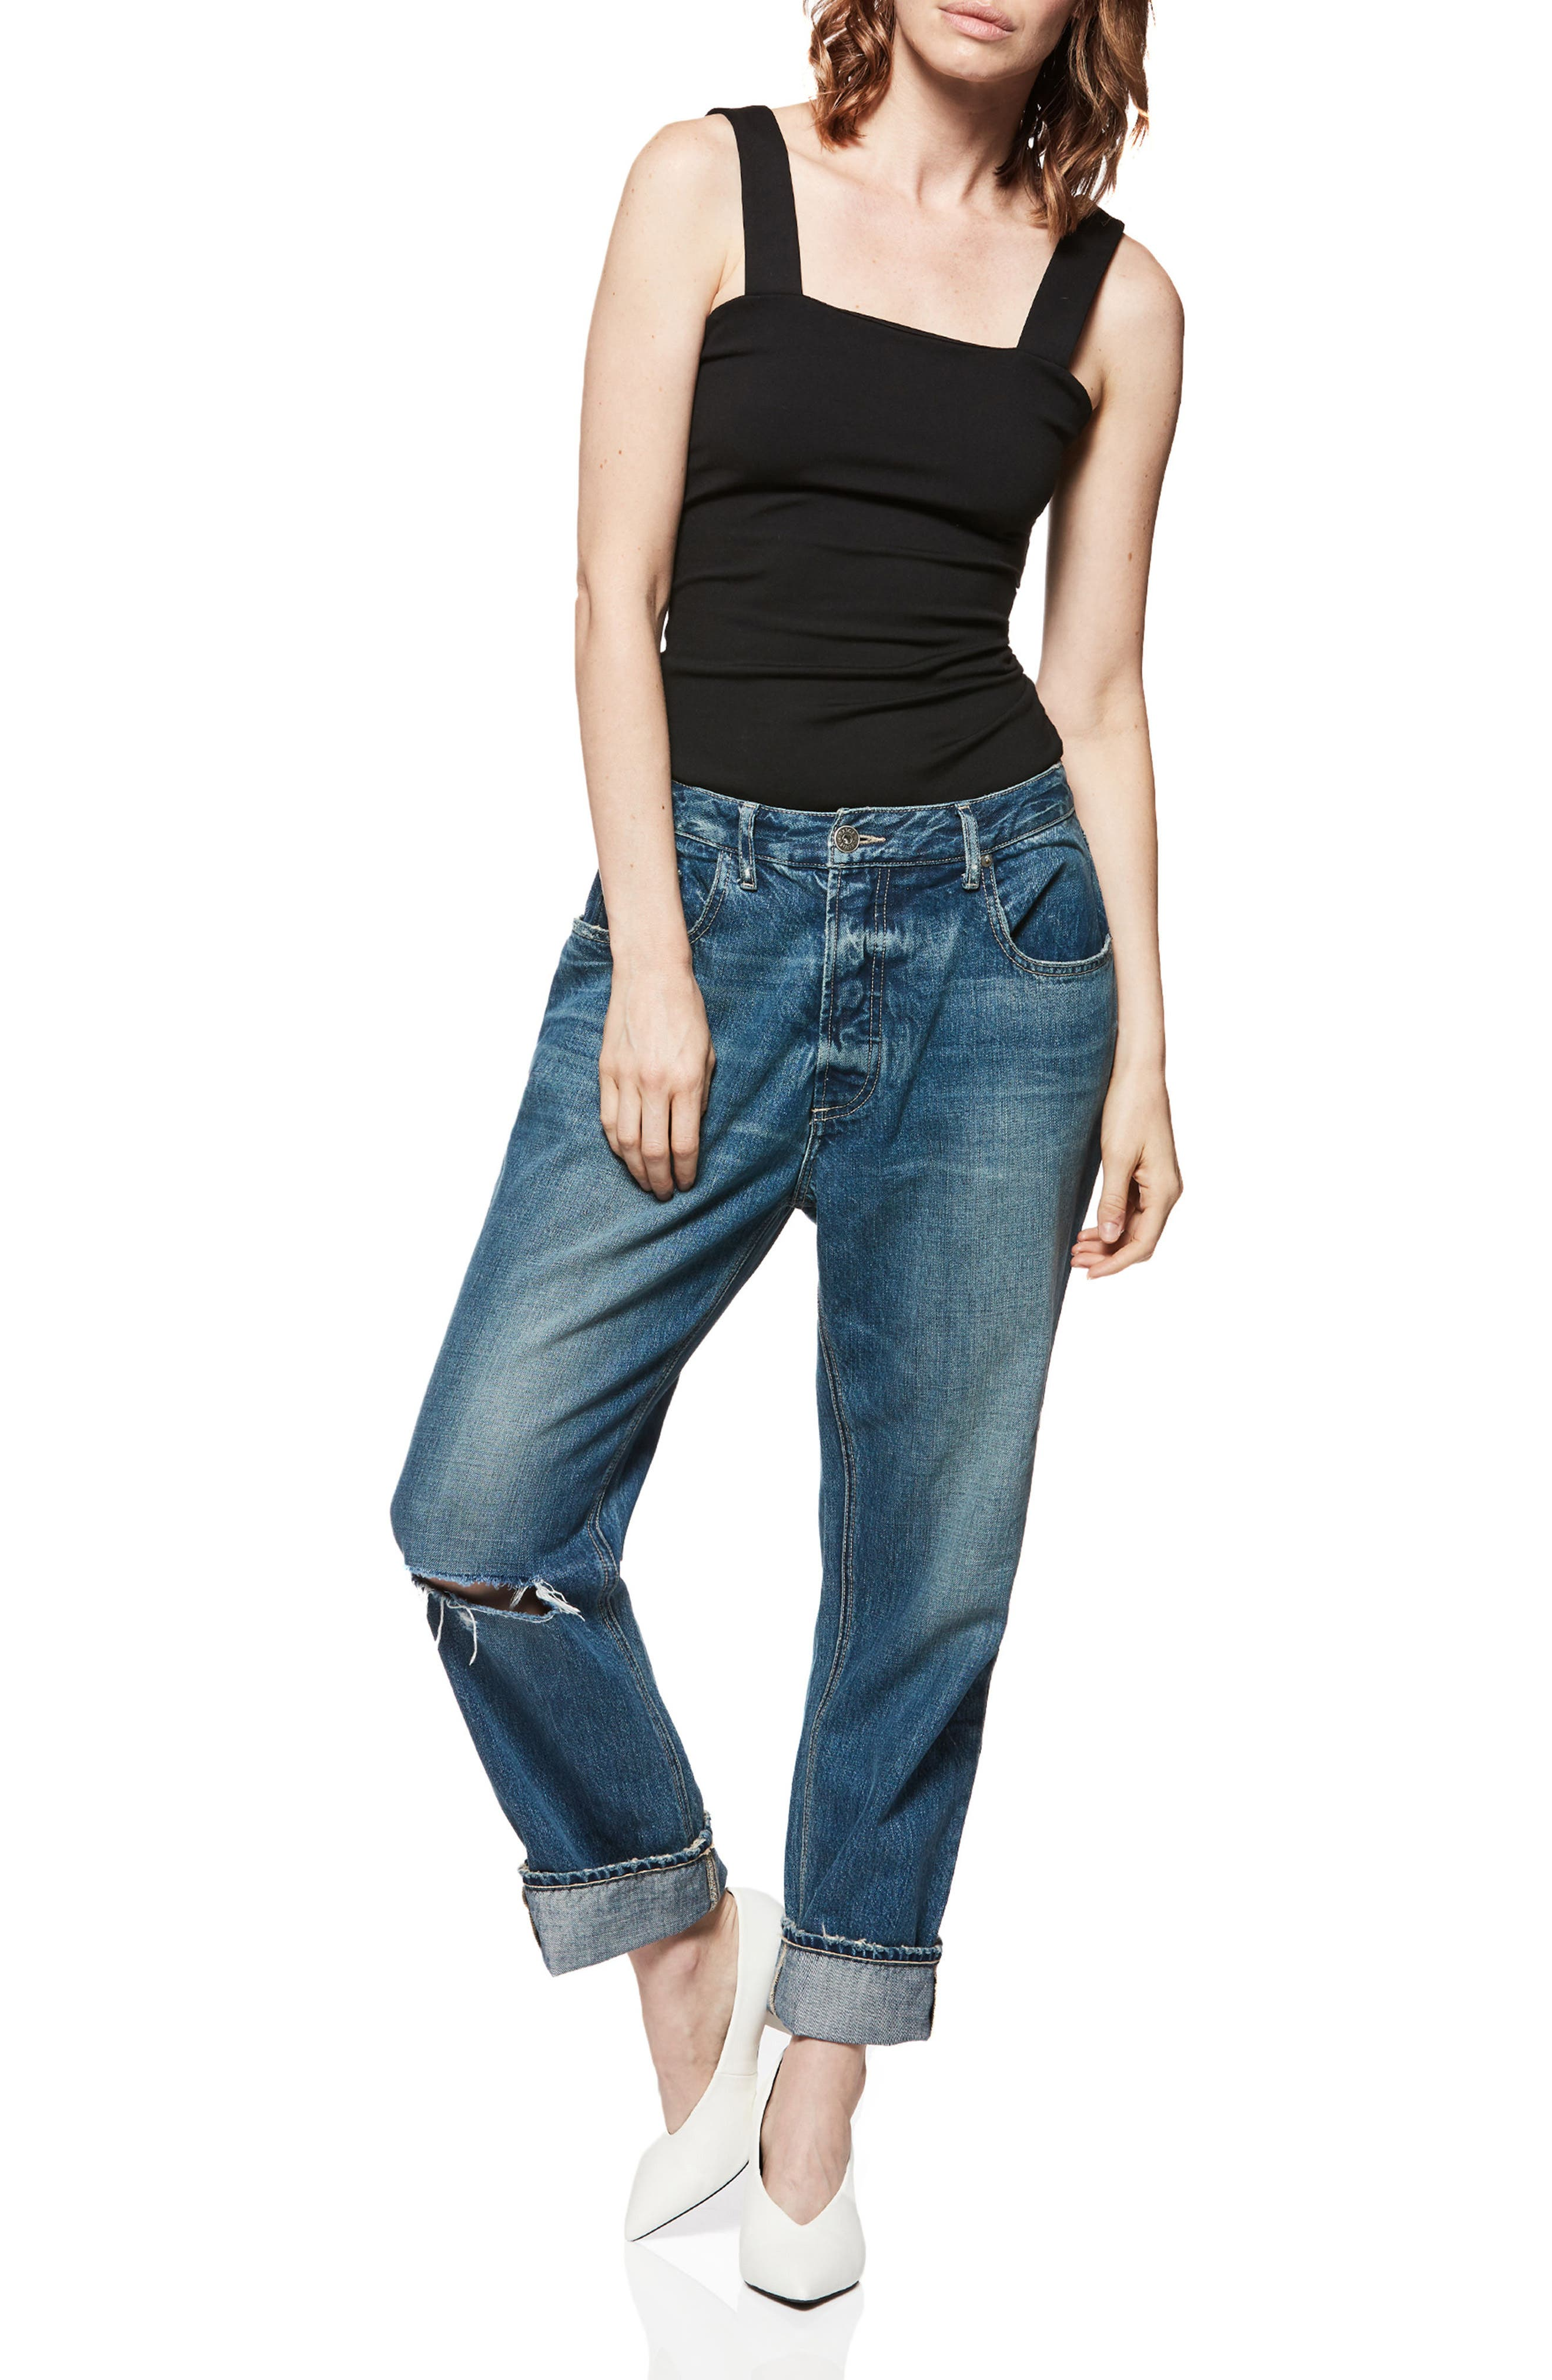 Mikey Mike Ripped Boyfriend Jeans,                             Alternate thumbnail 3, color,                             400